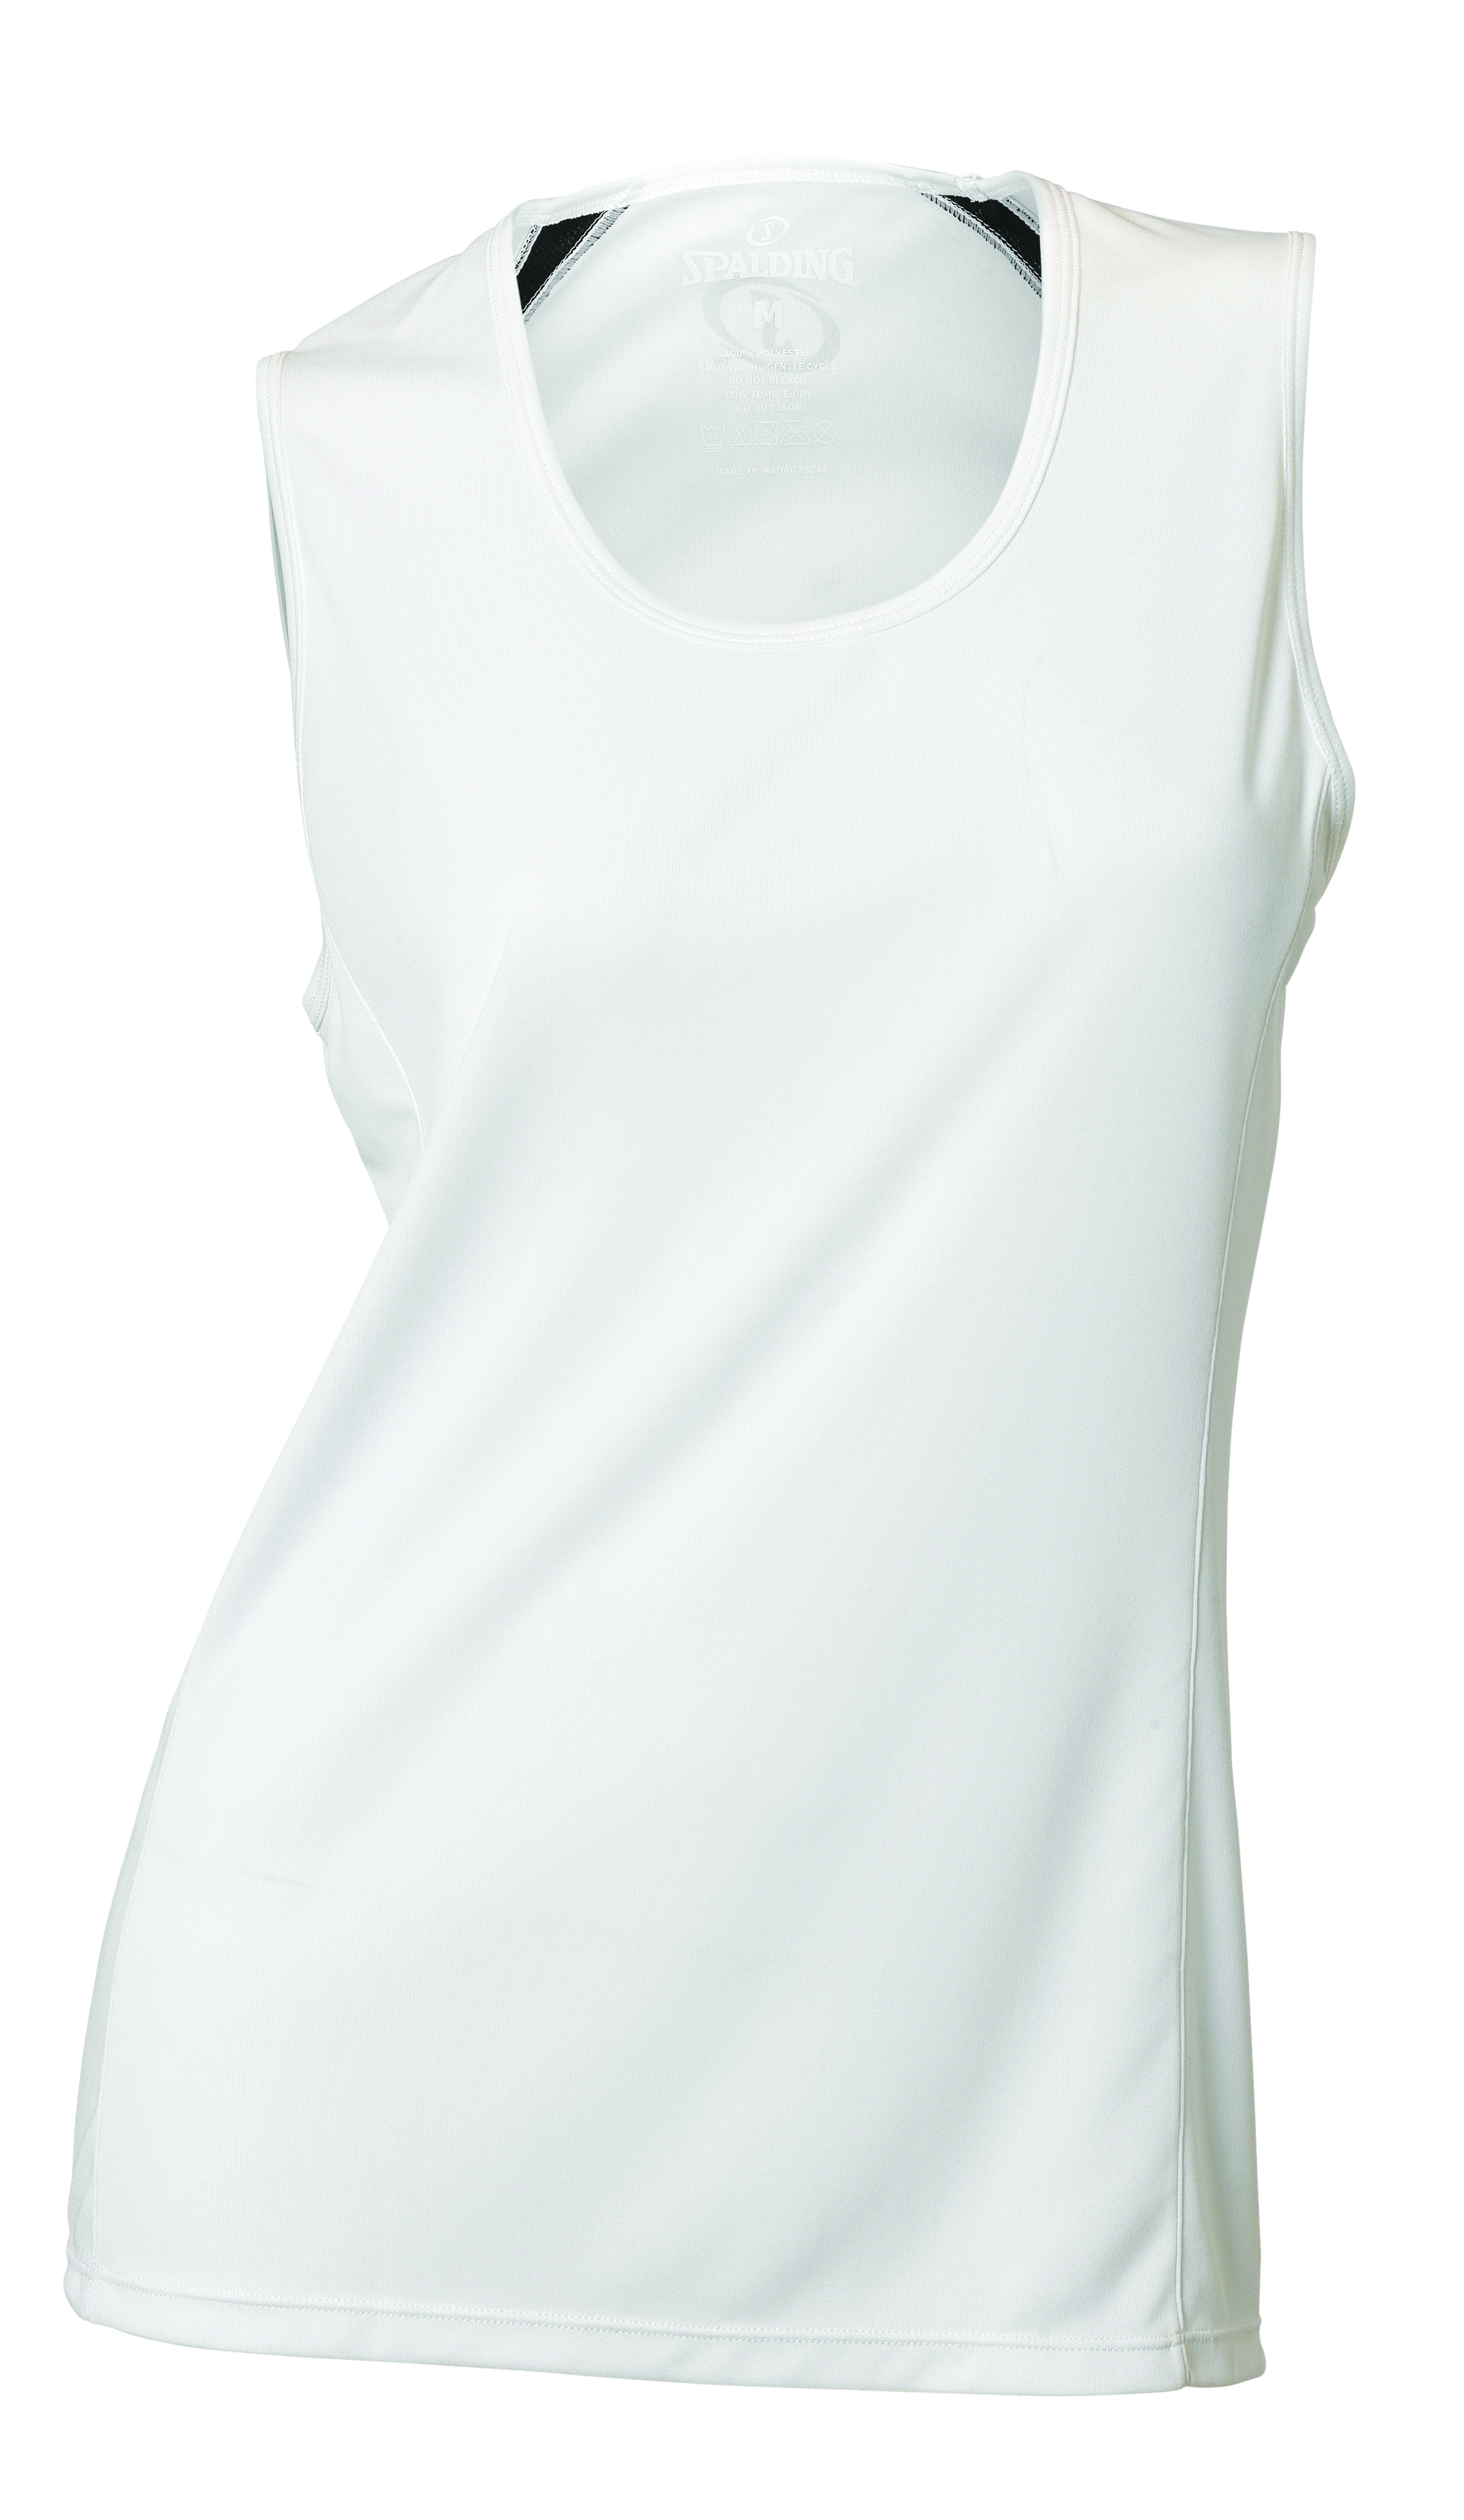 Core Training Vest Women - White - XS